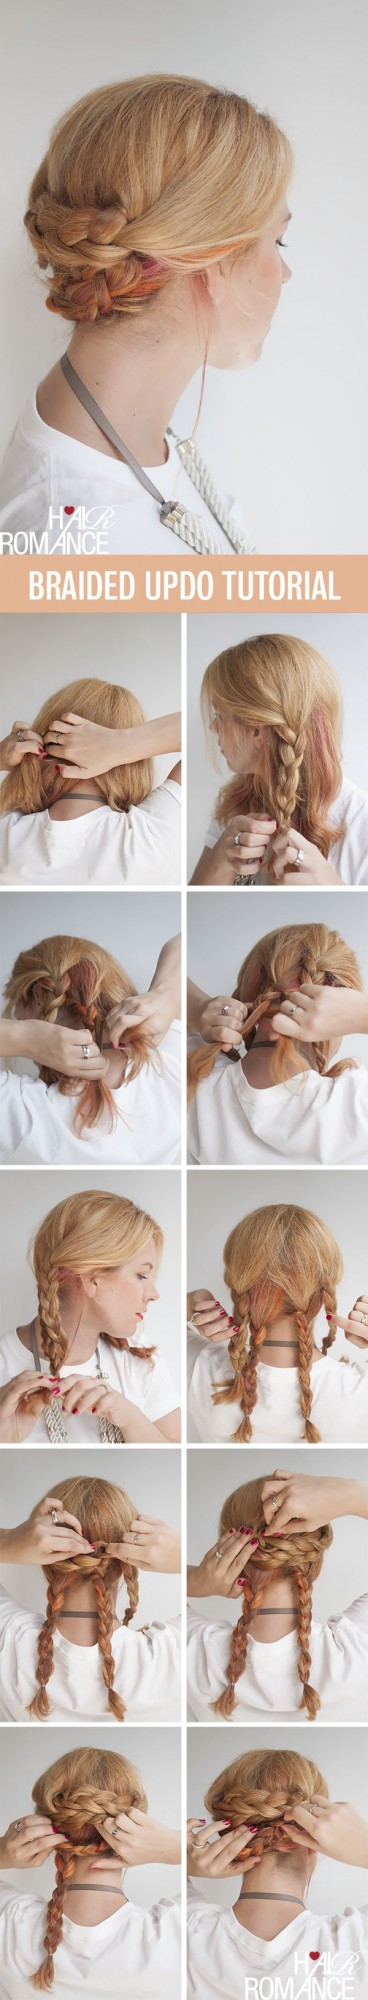 20 Cute and Easy Hairstyle Ideas and Tutorials (2)